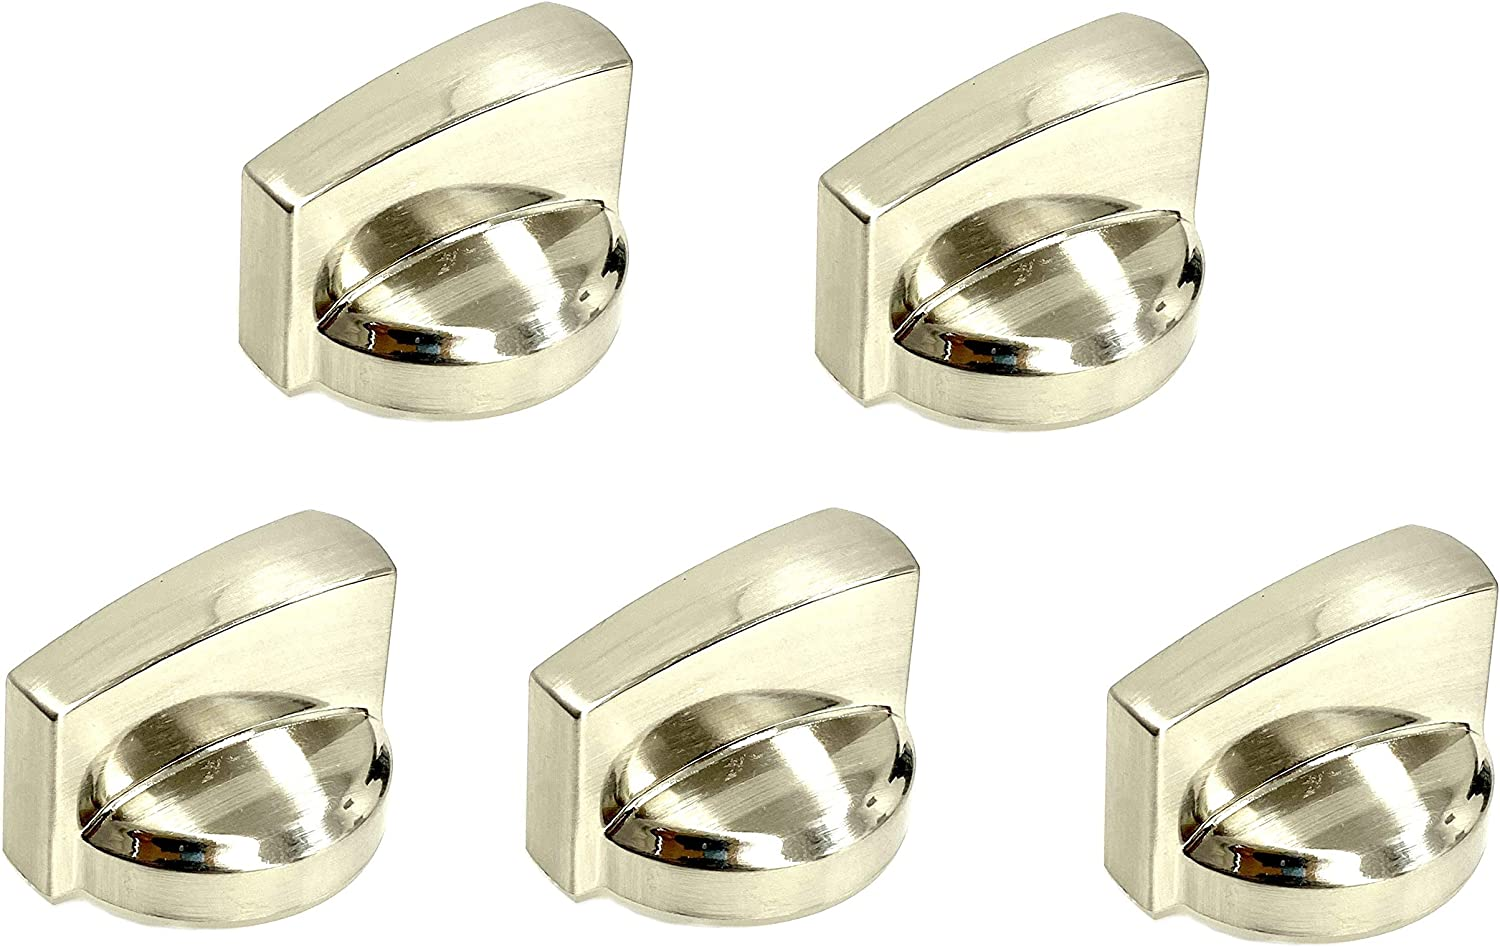 WB03X25796 Knob Replacement for GE Stove/Range AP5986232, WB03T10326, PS11721433 (5 Pack)